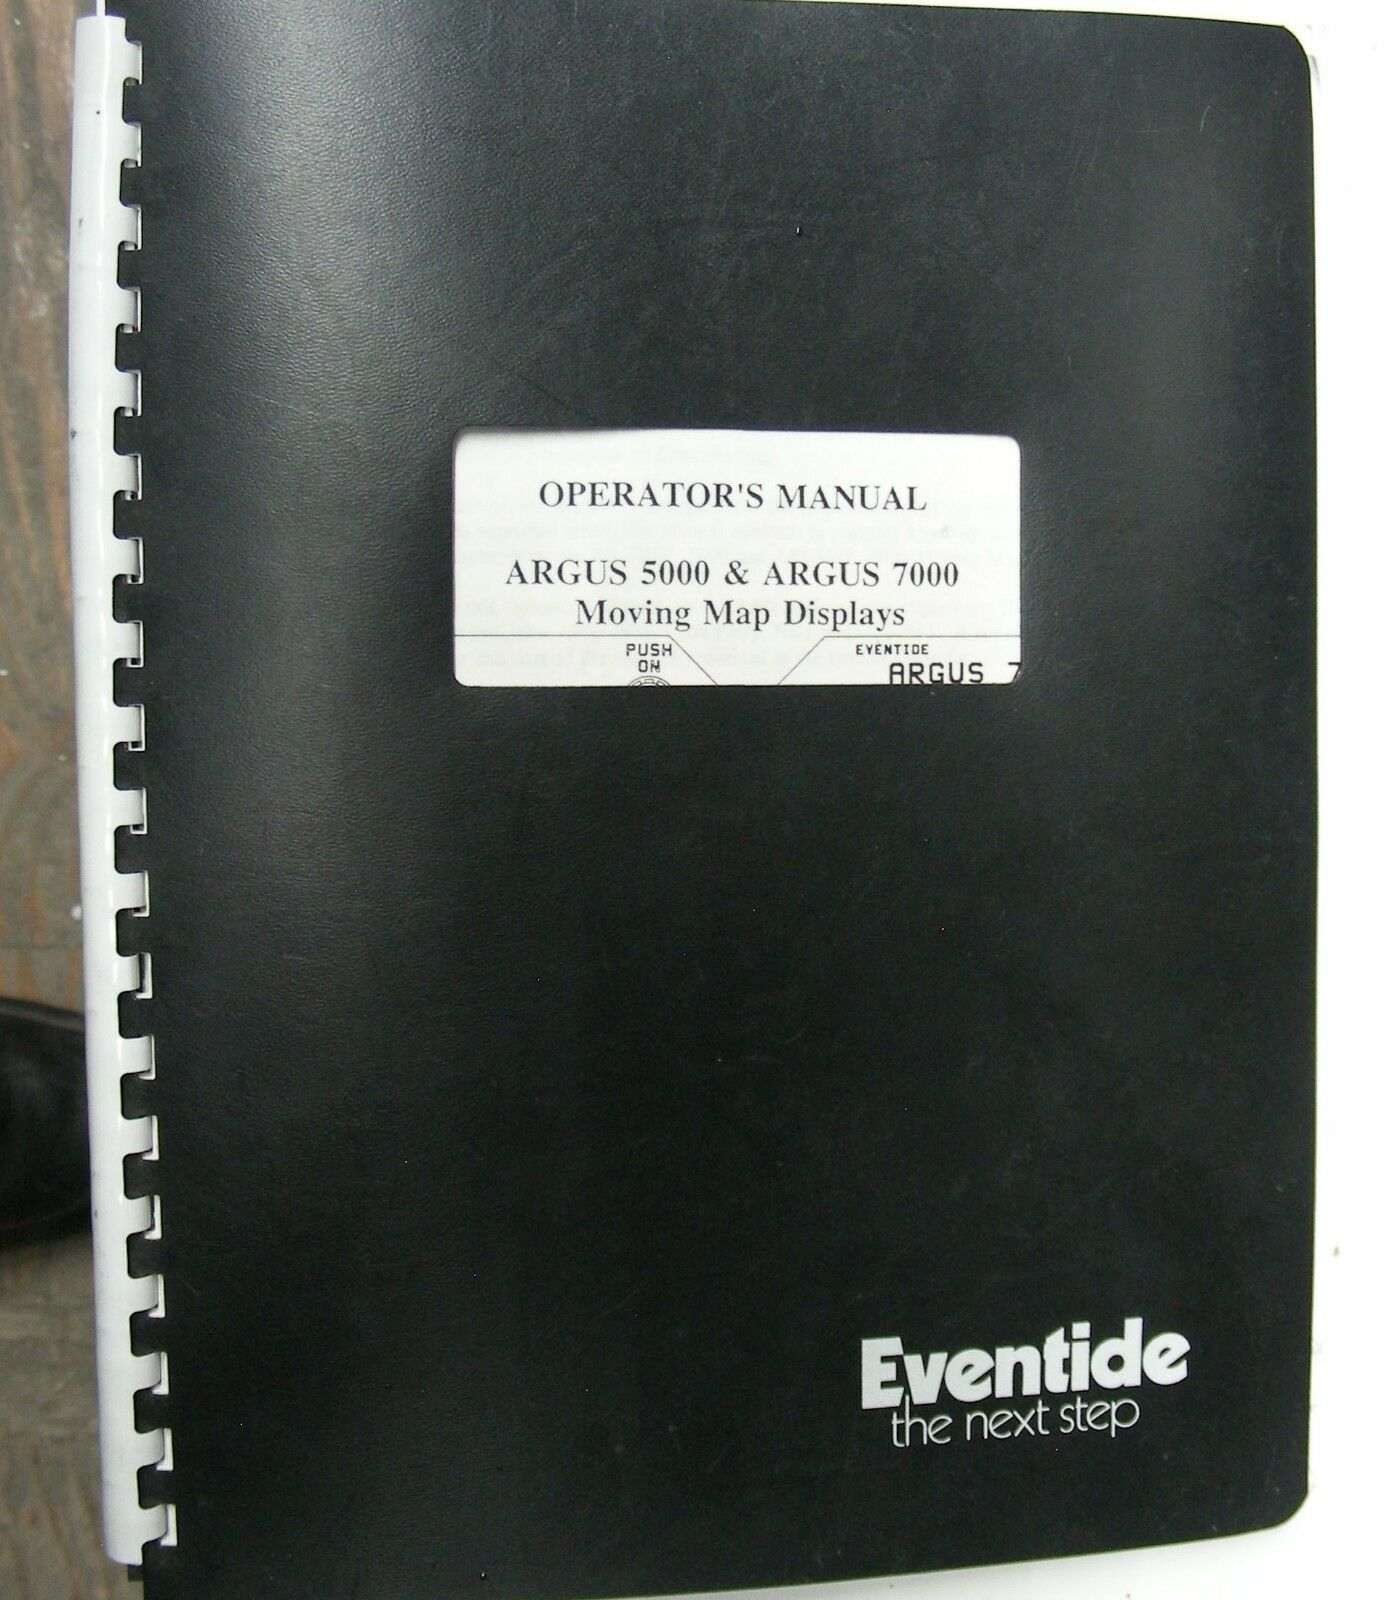 USED Eventide Argus 5000 P/N 5000-10-15 moving map with mounting tray